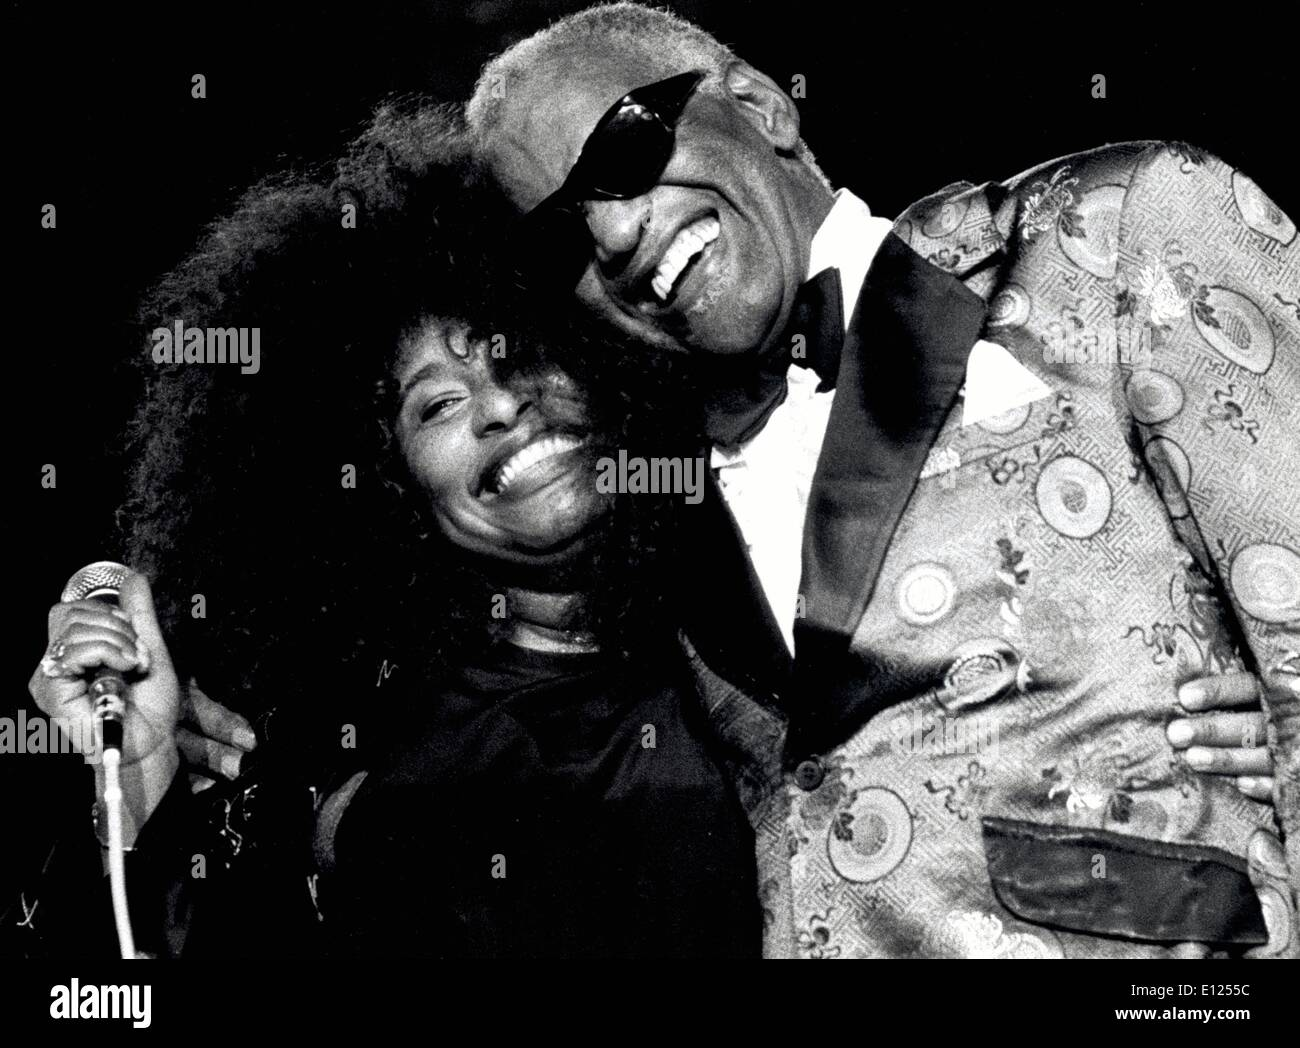 July 18, 1991 - Montreal, Canada - Grammy Winning Singer Ray Charles Robinson died at age 73 surrounded by family in Beverly Hills, California on June 10, 2004. The music legend won a total of 12 Grammy Awards and had dazzled fans since the late 1950s. Charles overcame a tough childhood in poverty, blinded at 7-years-old and an orphan at 15, to become of the world's extraordinary musicians in a range of musical genres. PICTURED: Jazz legend RAY CHARLES hugs singer CHAKA KHAN after her performance at the 1991 Montreux Jazz Festival. - Stock Image